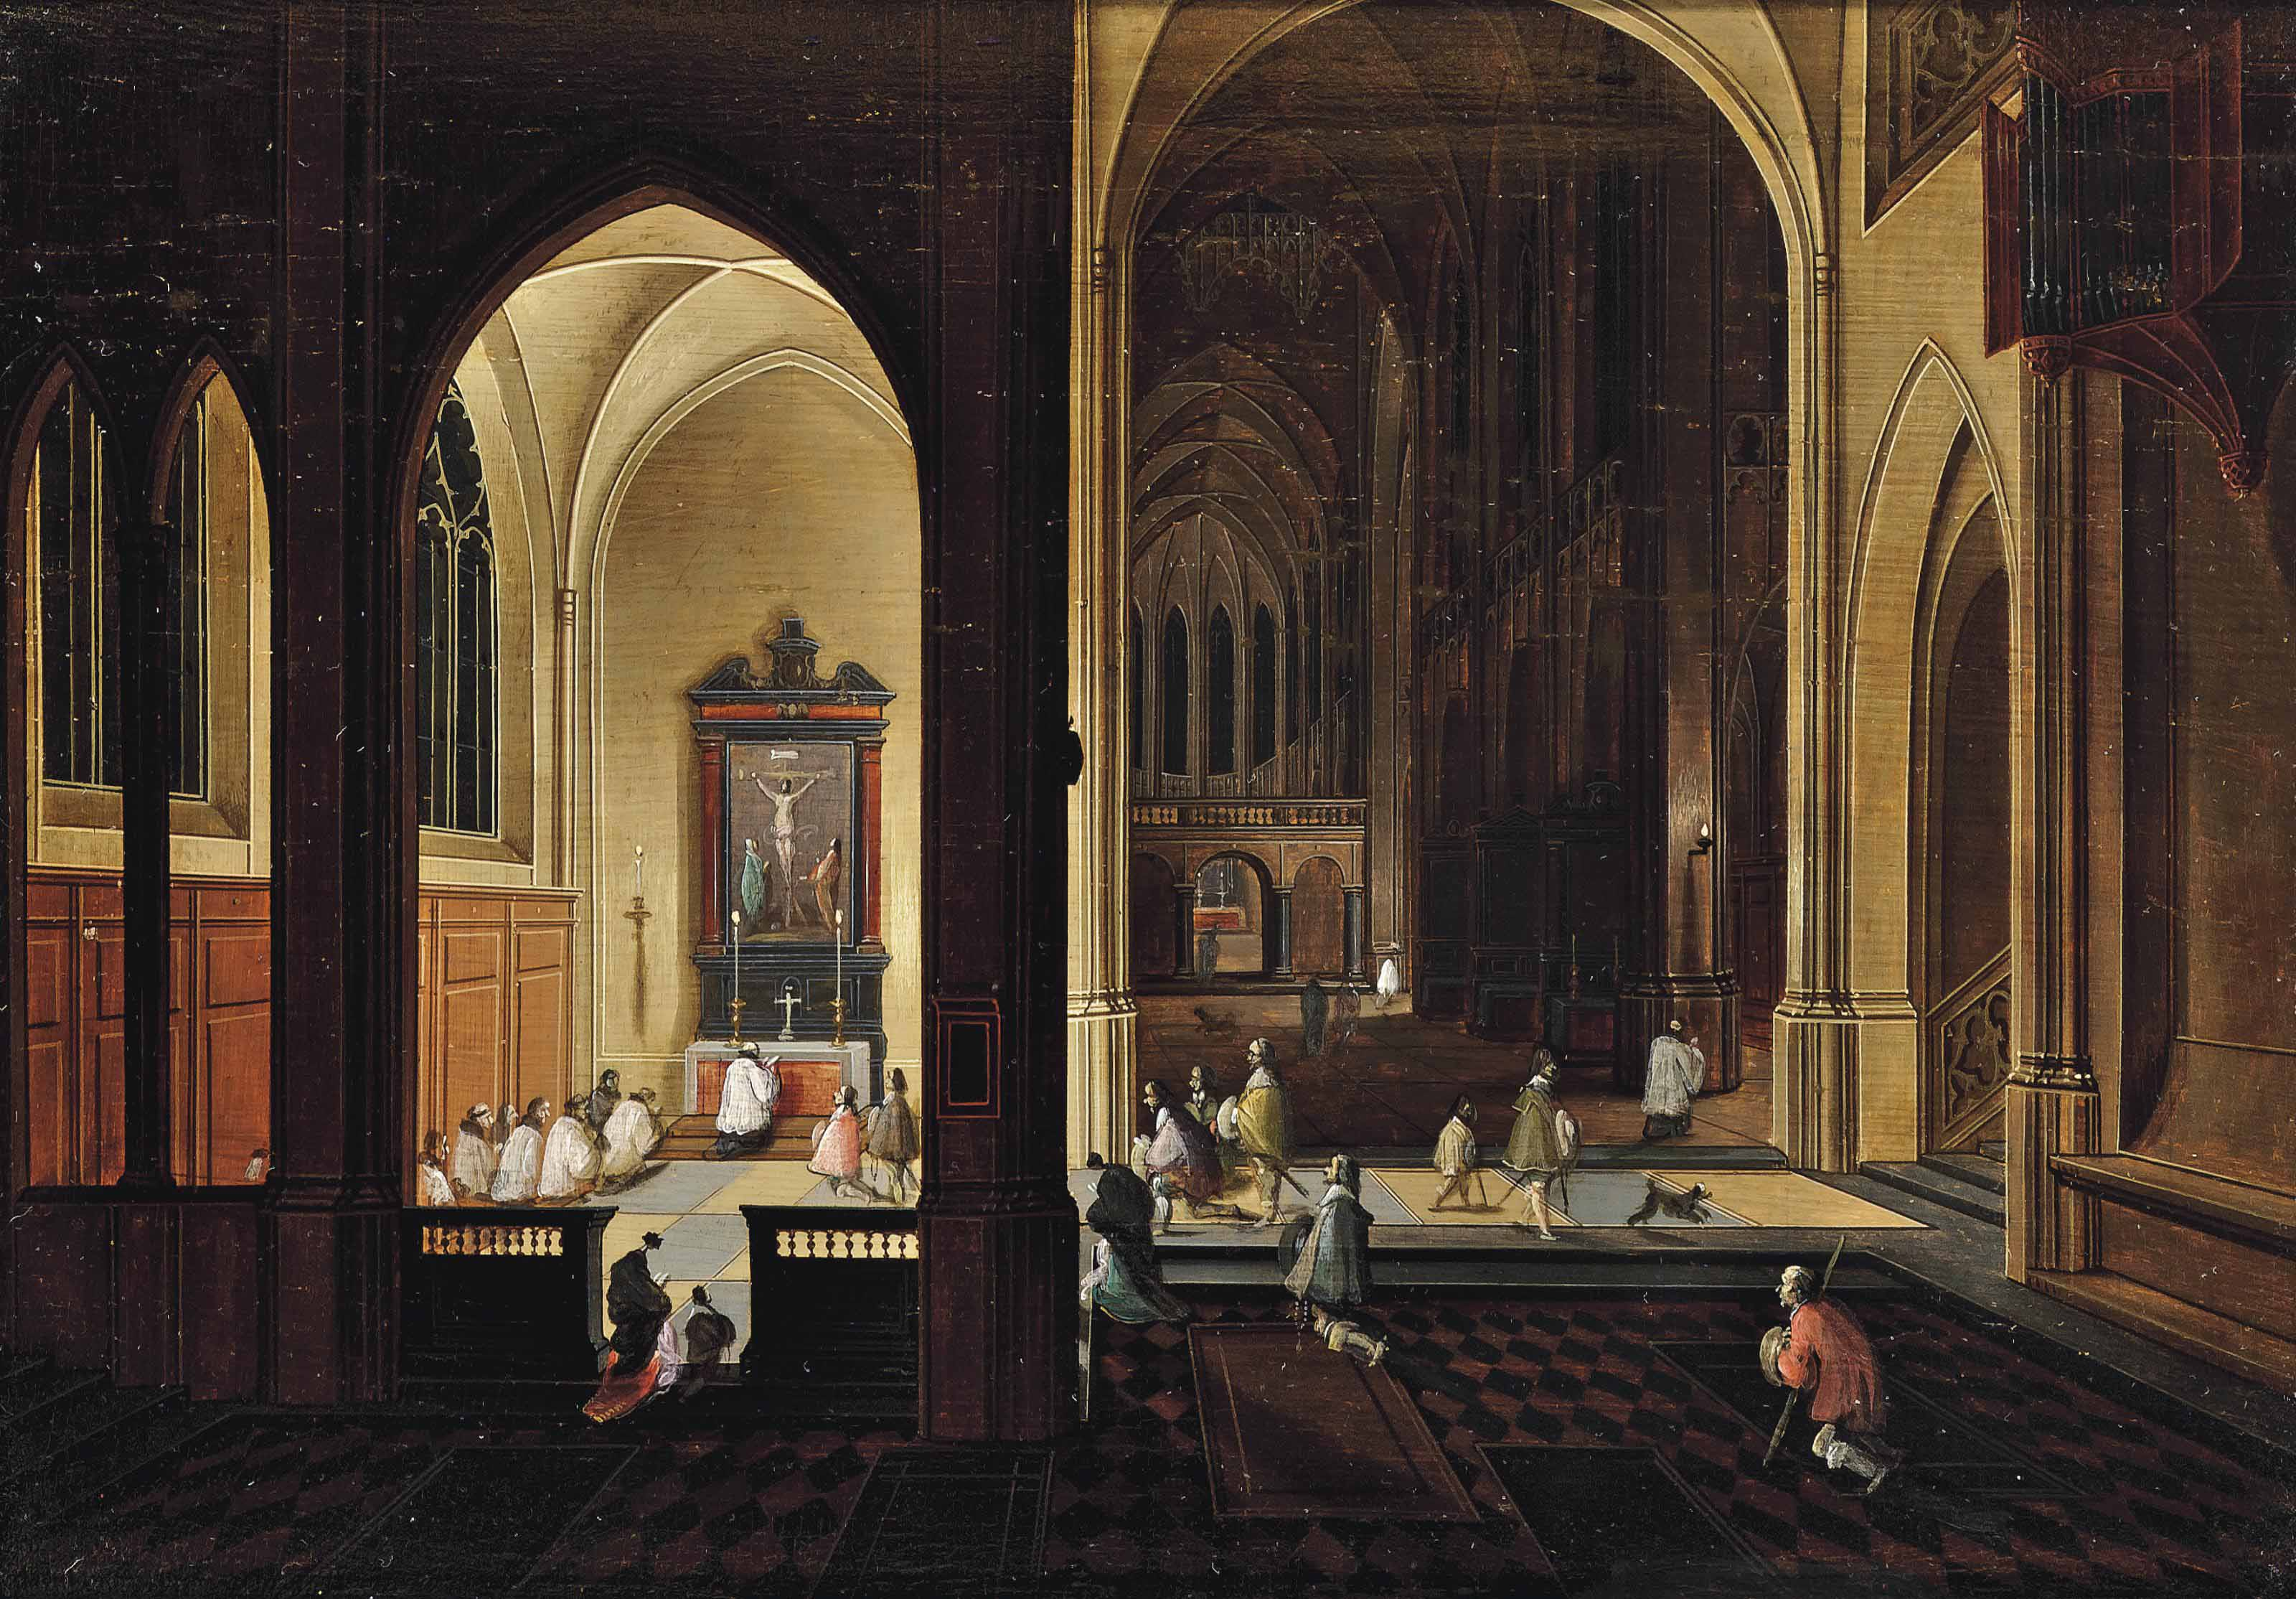 The interior of a gothic cathedral by candlelight, with elegant company by a side altar